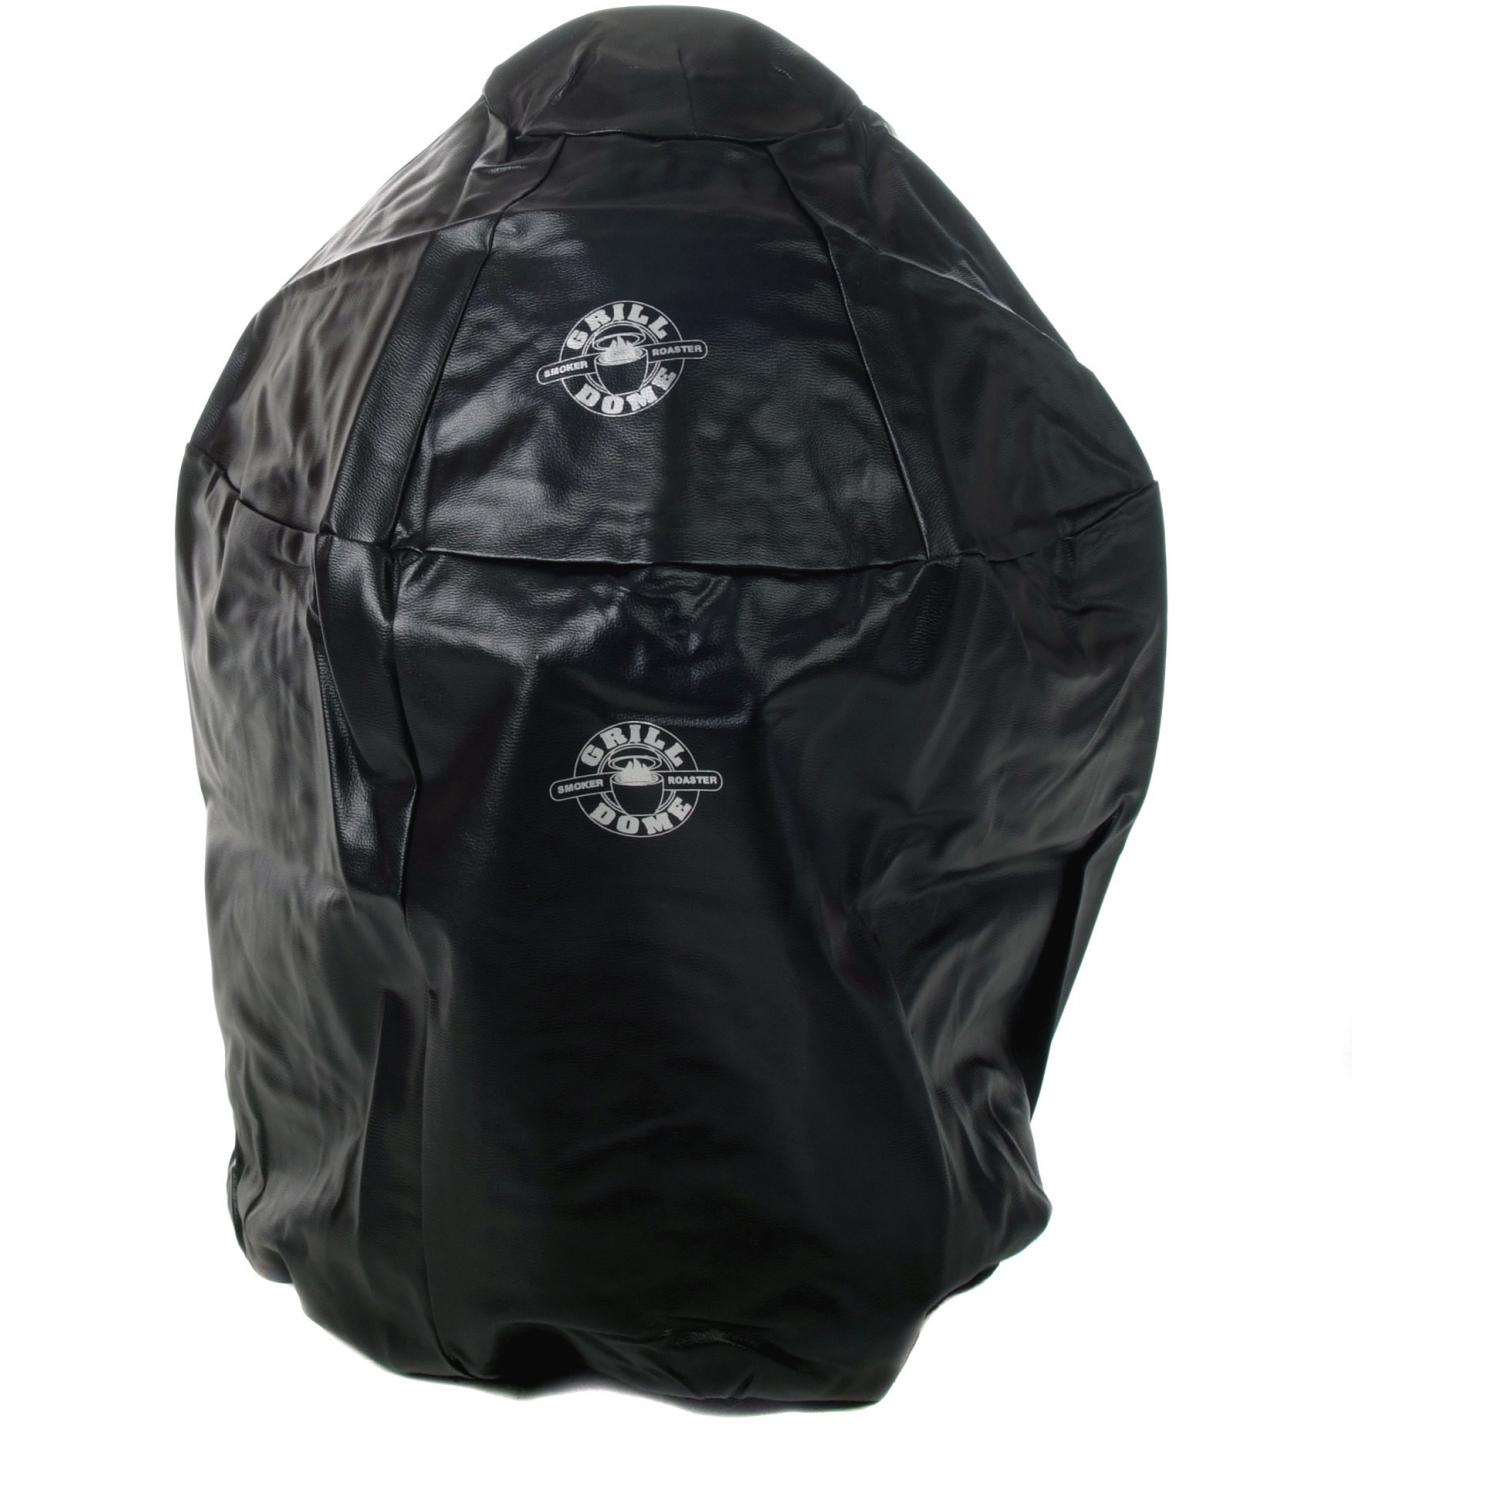 Grill Dome Infinity Vinyl Grill Cover For Dome On Mobile Stand